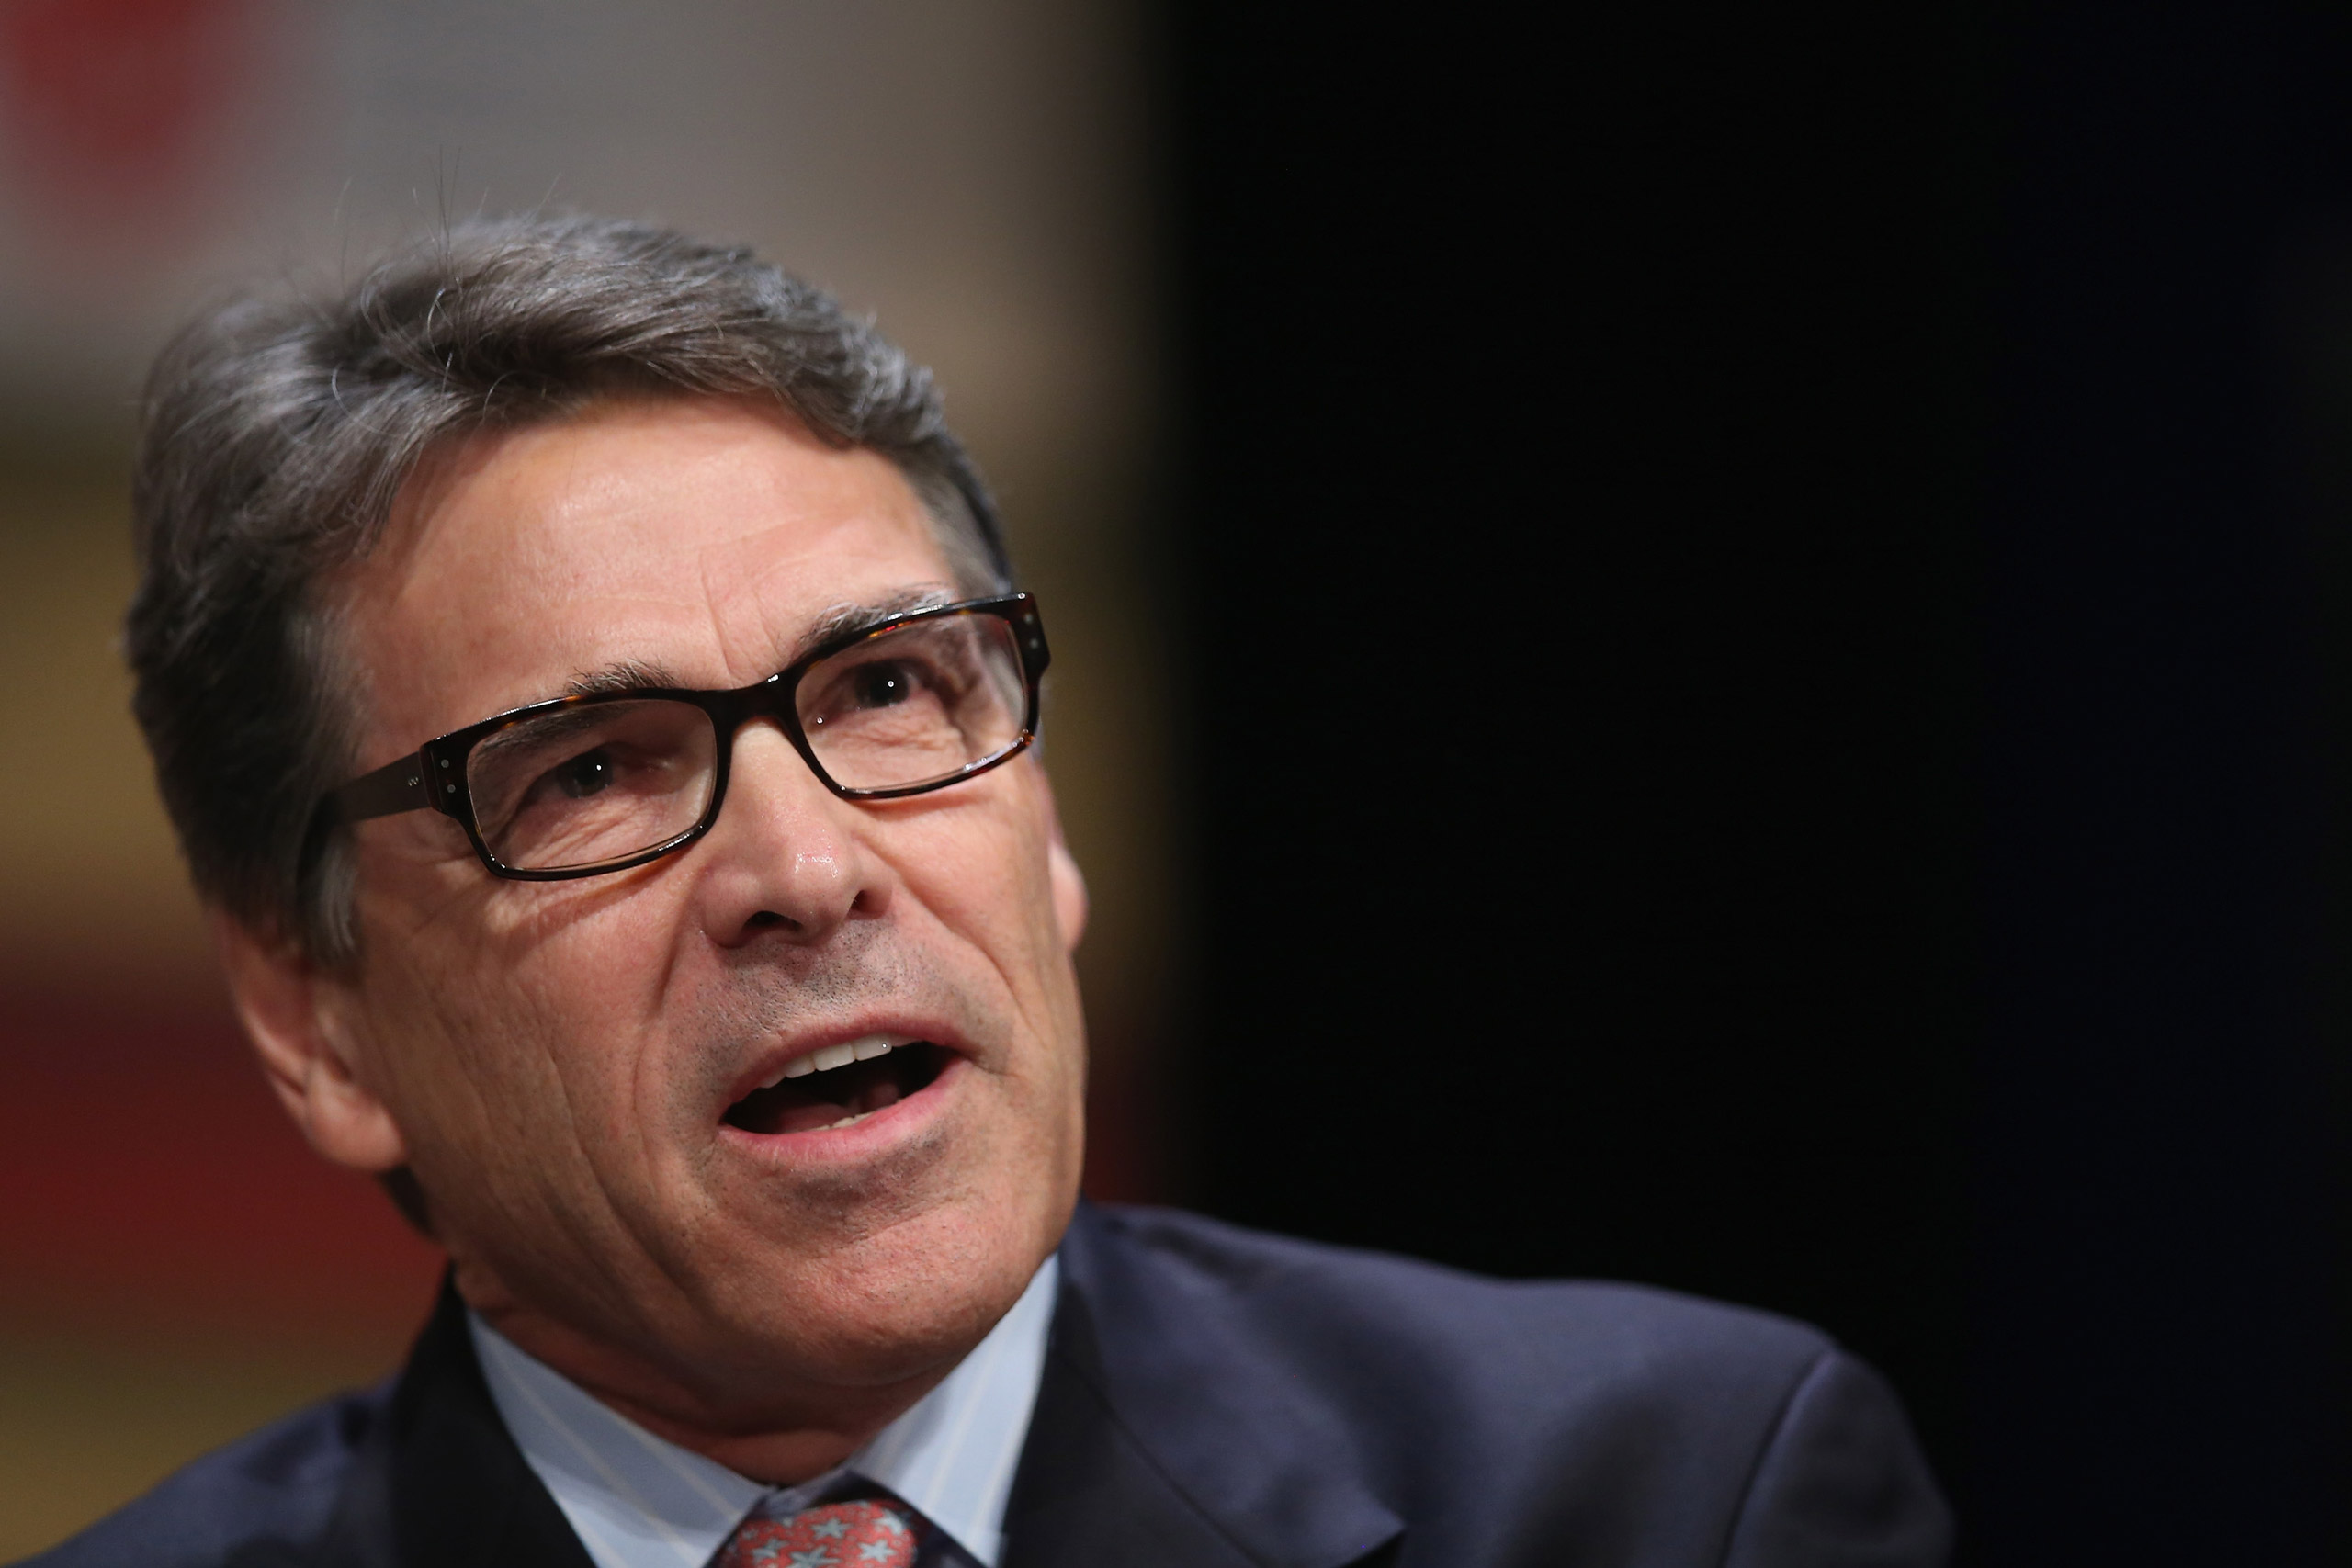 Former Texas Governor Rick Perry fields questions at The Family Leadership Summit at Stephens Auditorium in Ames, Iowa, on July 18, 2015.